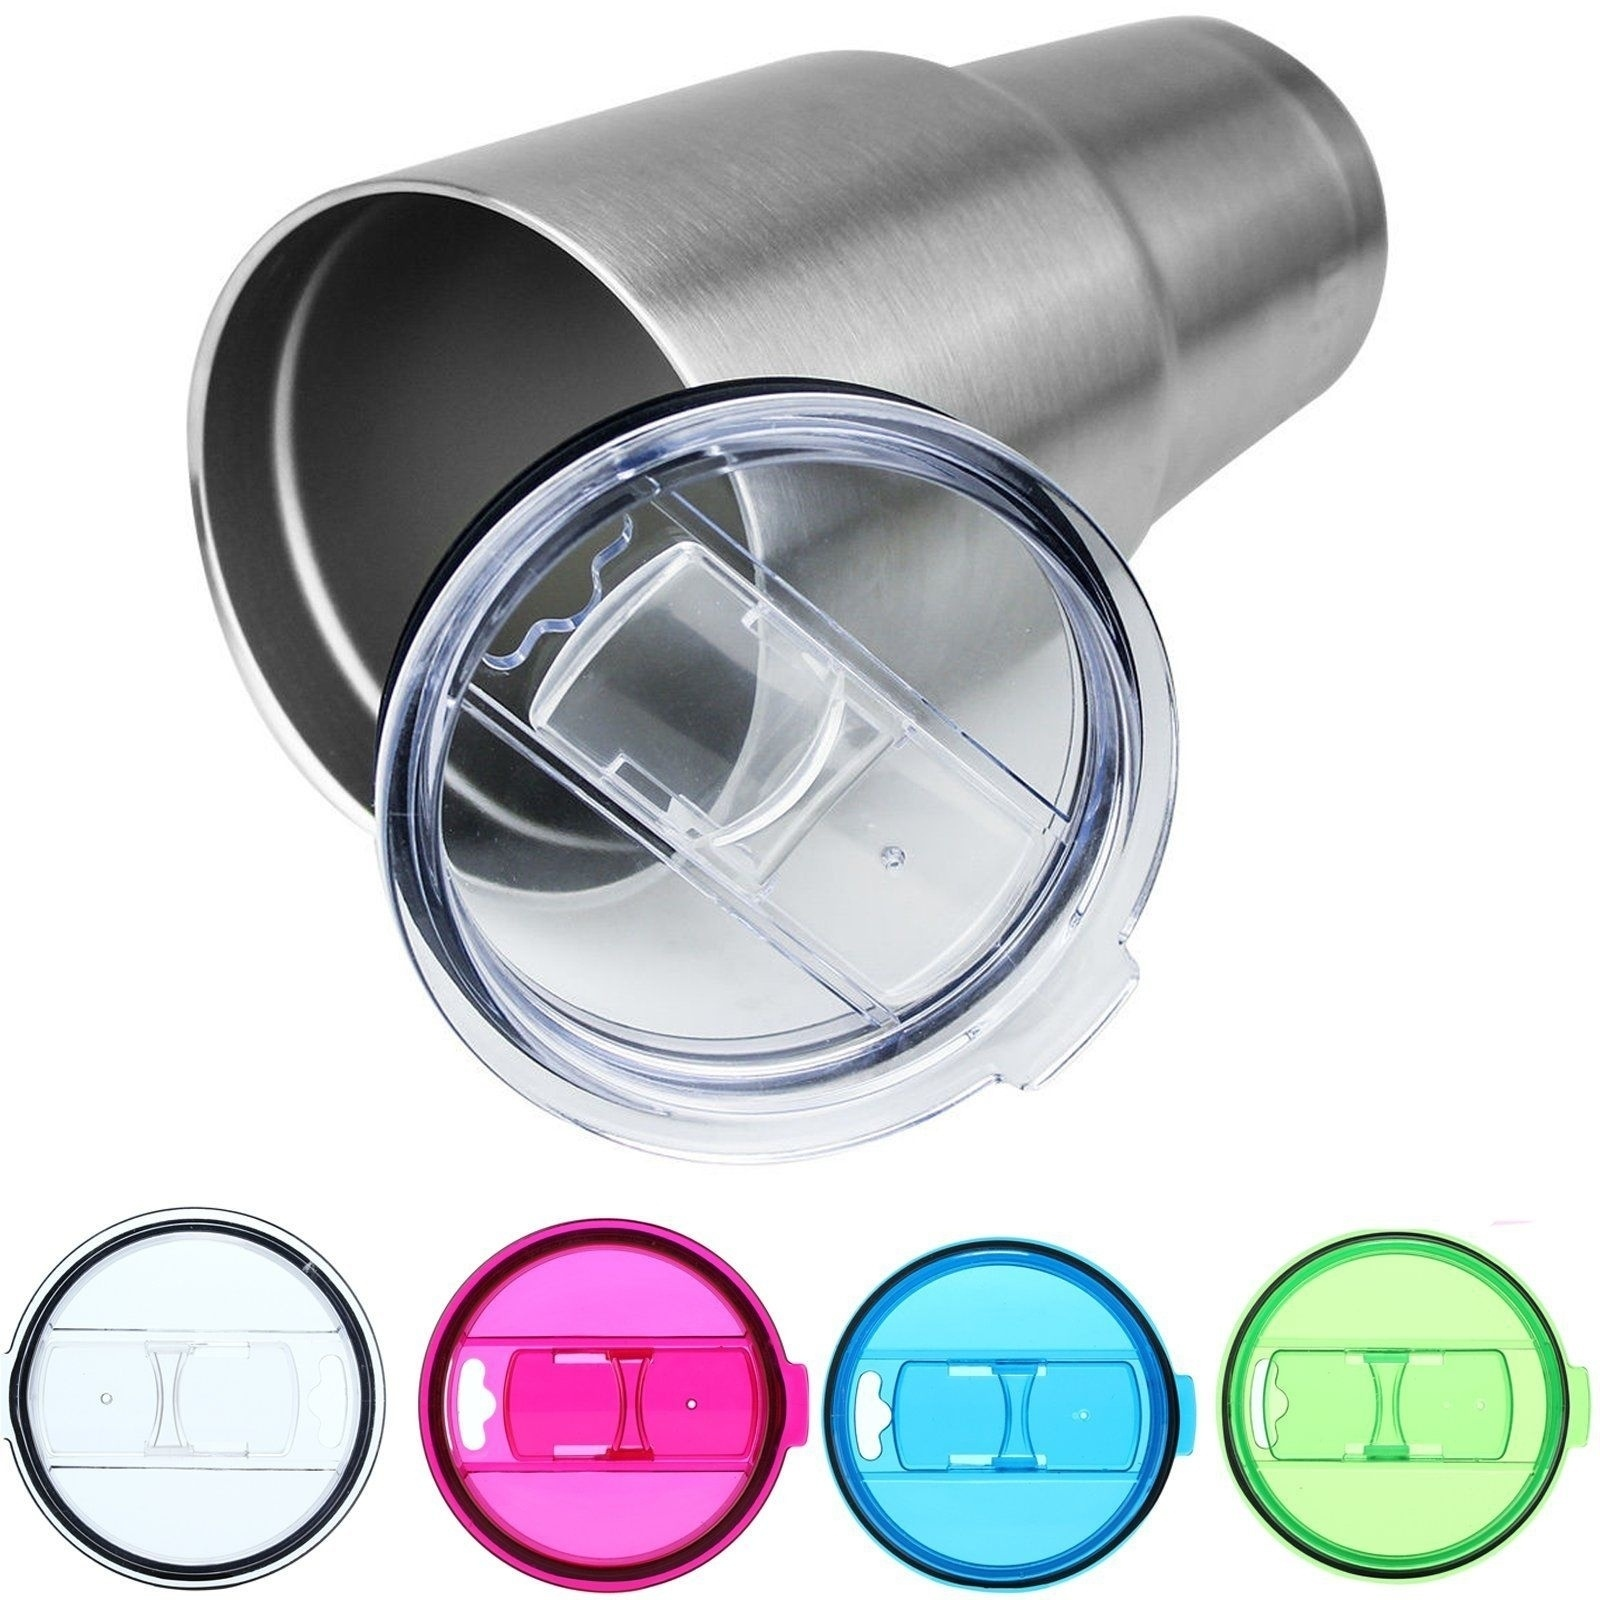 ZELU 7 Colors Replacement Splash Spill Proof Lid For RTIC / <font><b>YETI</b></font> <font><b>Rambler</b></font> <font><b>30</b></font> <font><b>Oz</b></font> <font><b>Tumbler</b></font> <font><b>Cup</b></font> Mug 6D